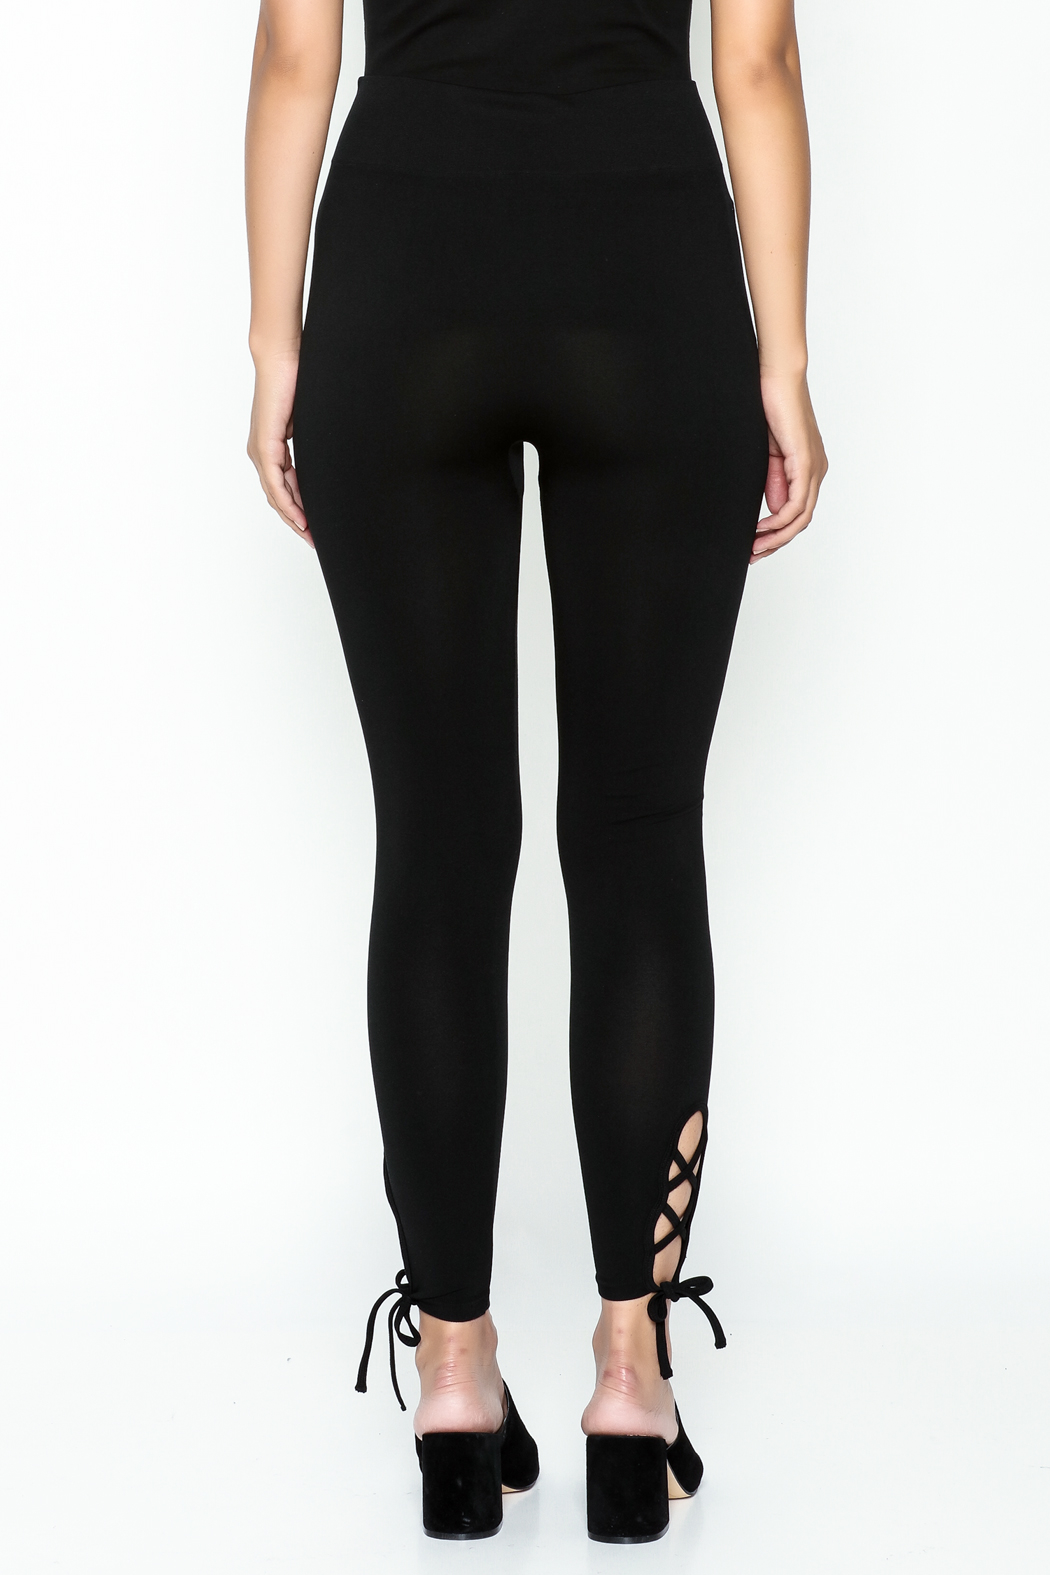 Private Label Criss Cross Leggings - Back Cropped Image